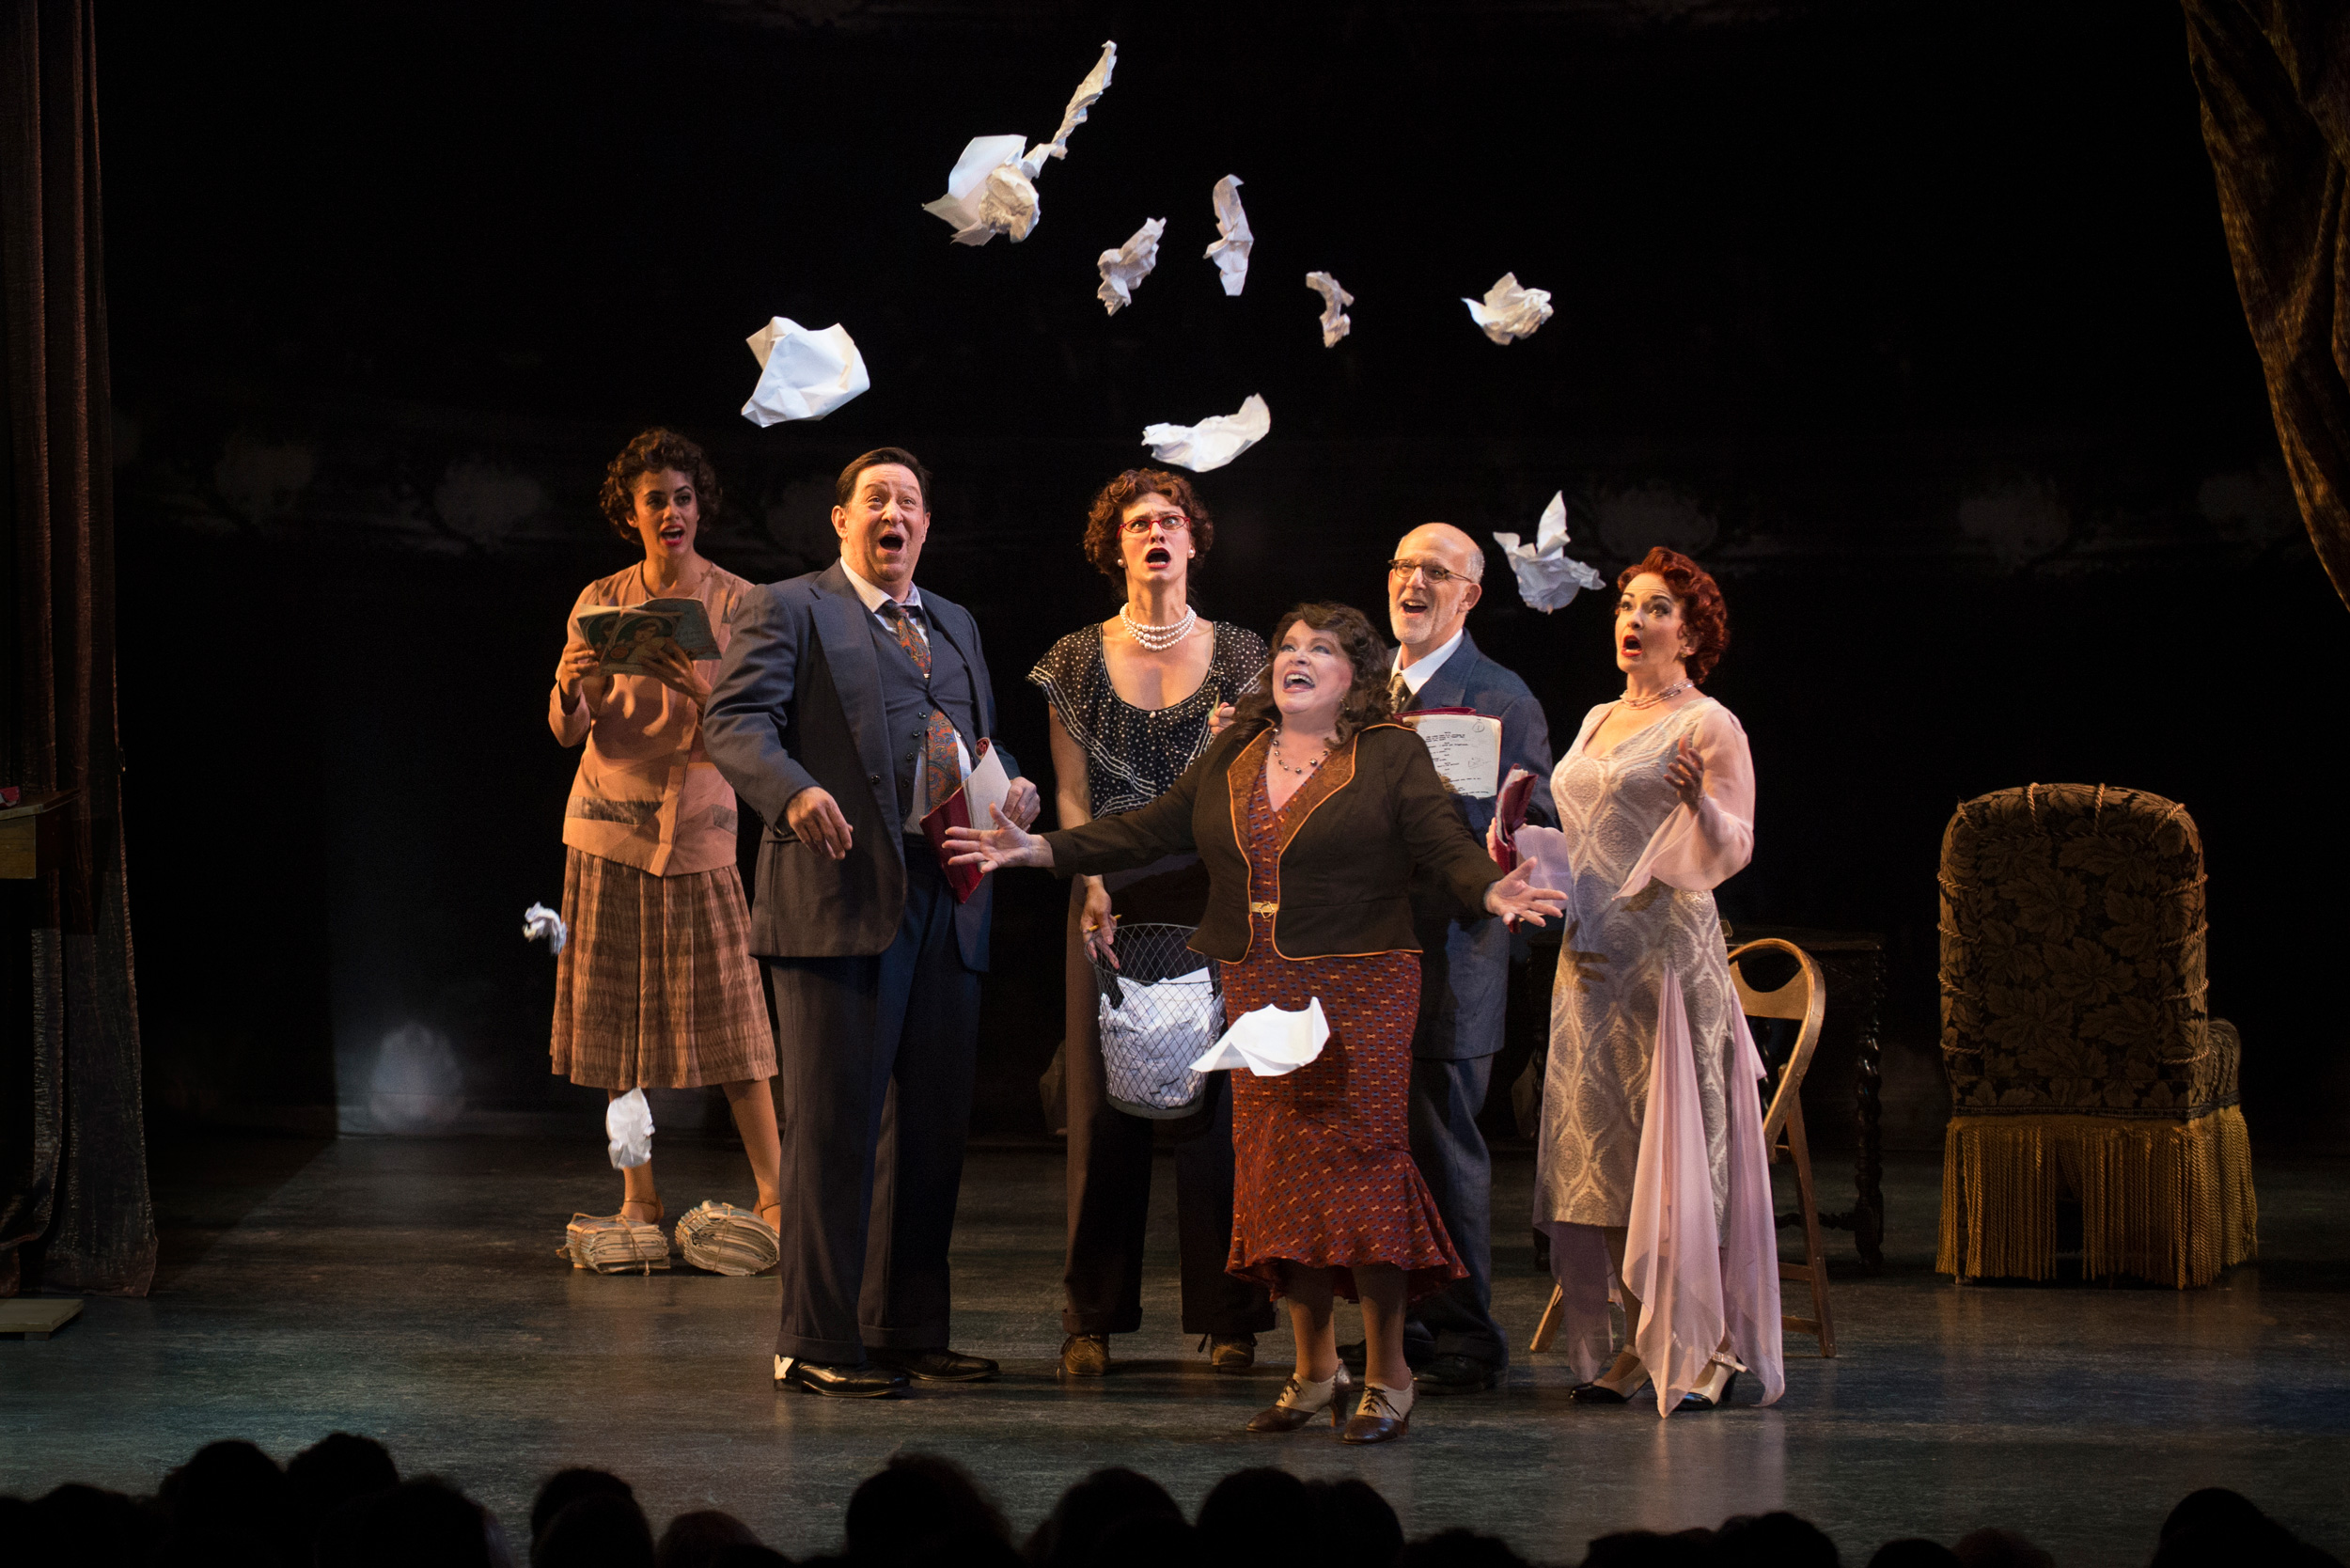 2017_Bullets-Over-Broadway_Carissa-Fiorillo-_John-Paul-Almon_Elizabeth-Dugas-_Sally-Struthers_Kenny-Morris_Michele-Ragusa_photo-by_Gary-Ng_DSC8530.jpg